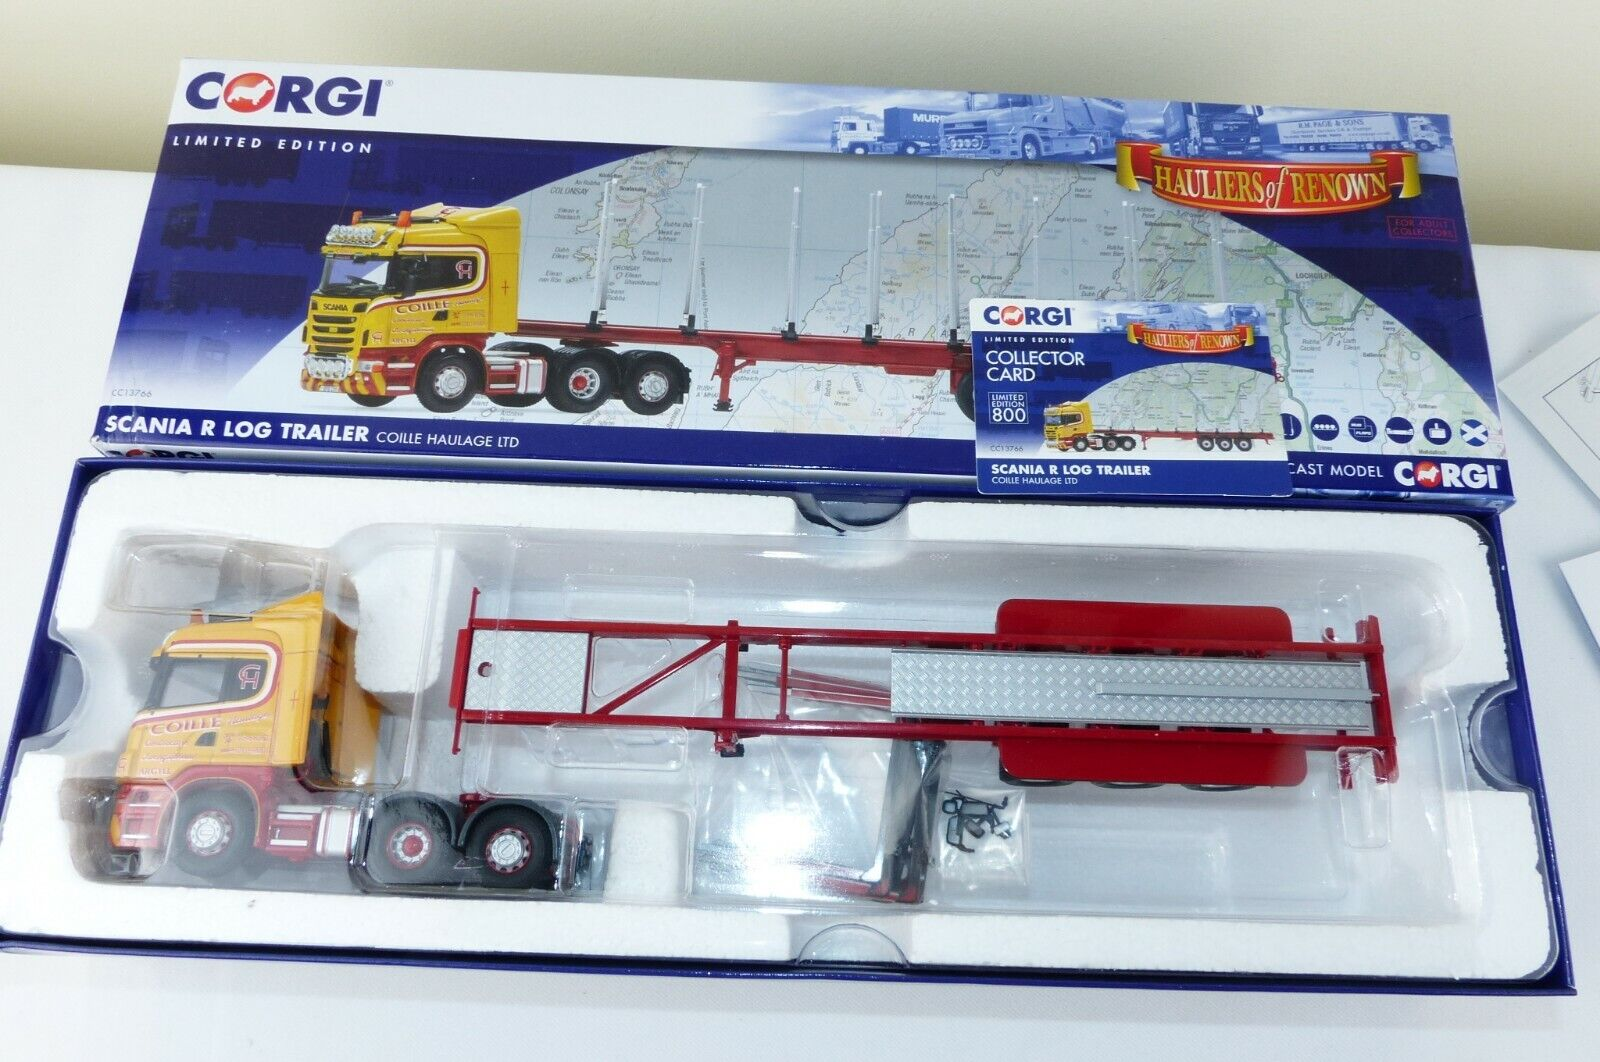 Corgi Hauliers of renown No 13766 Scania R and log trailer  Coille  New